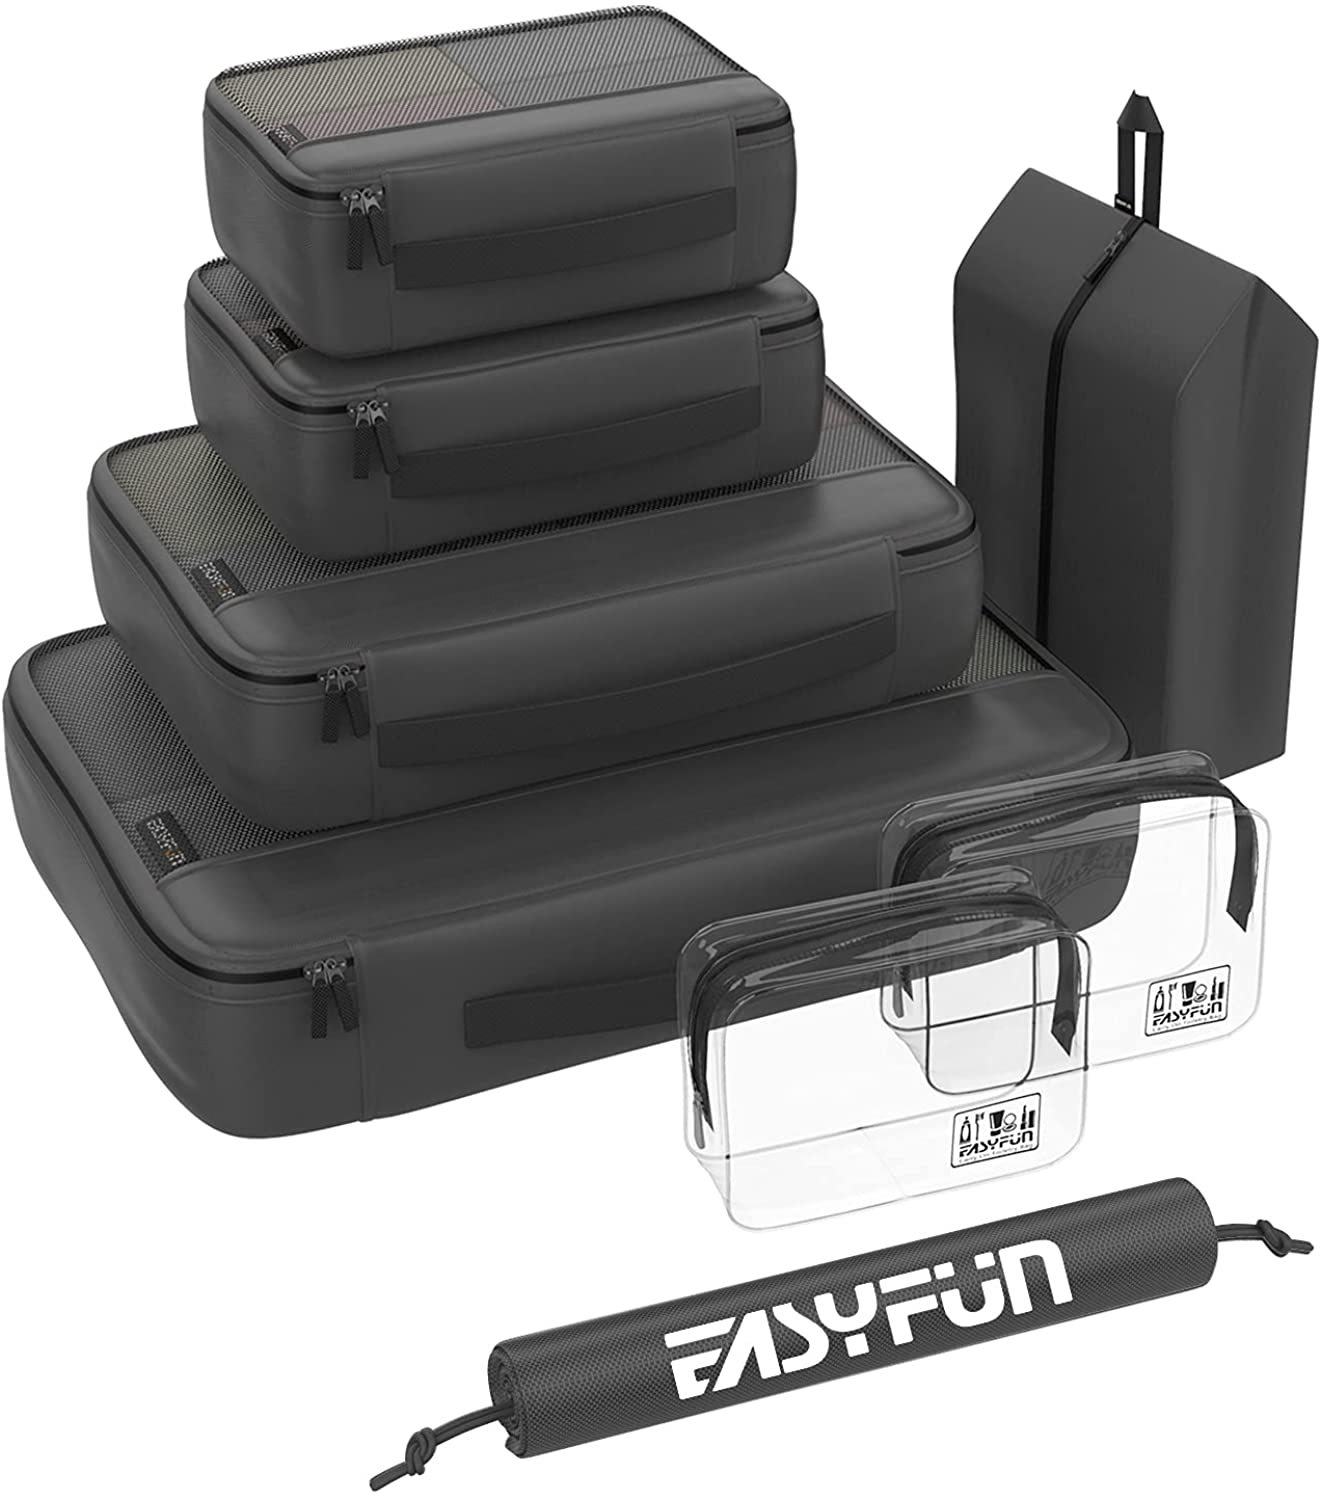 Packing Cubes for Suitcases 8 cube Ranking Finally popular brand TOP3 set Luggage Organizers travel